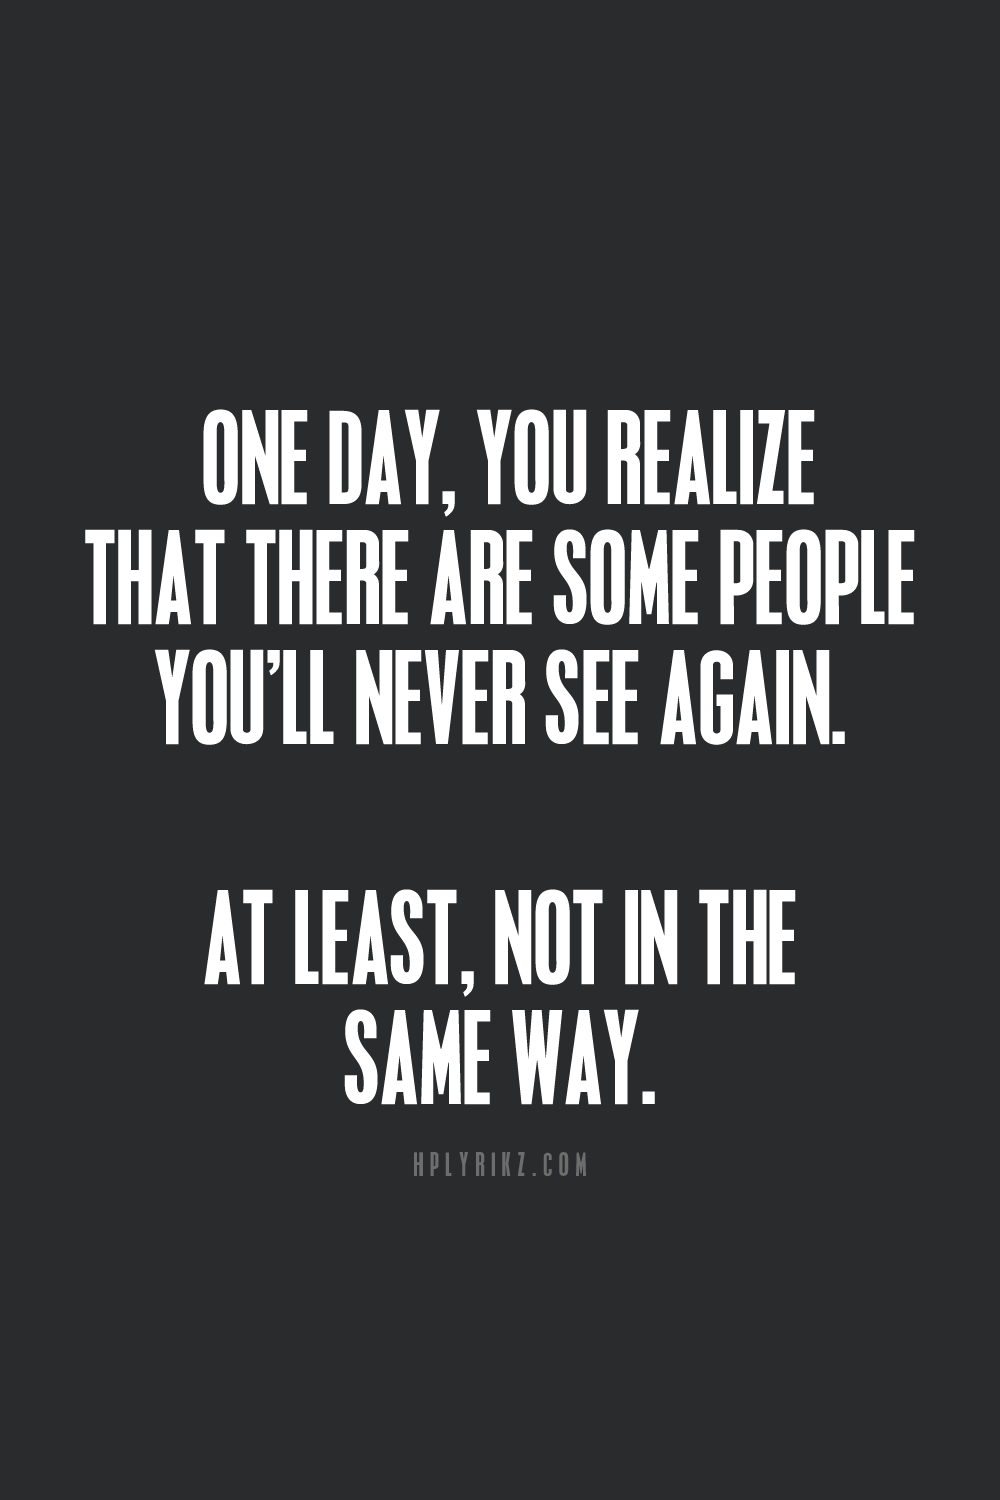 Sometimes people leave so that one day they can come back